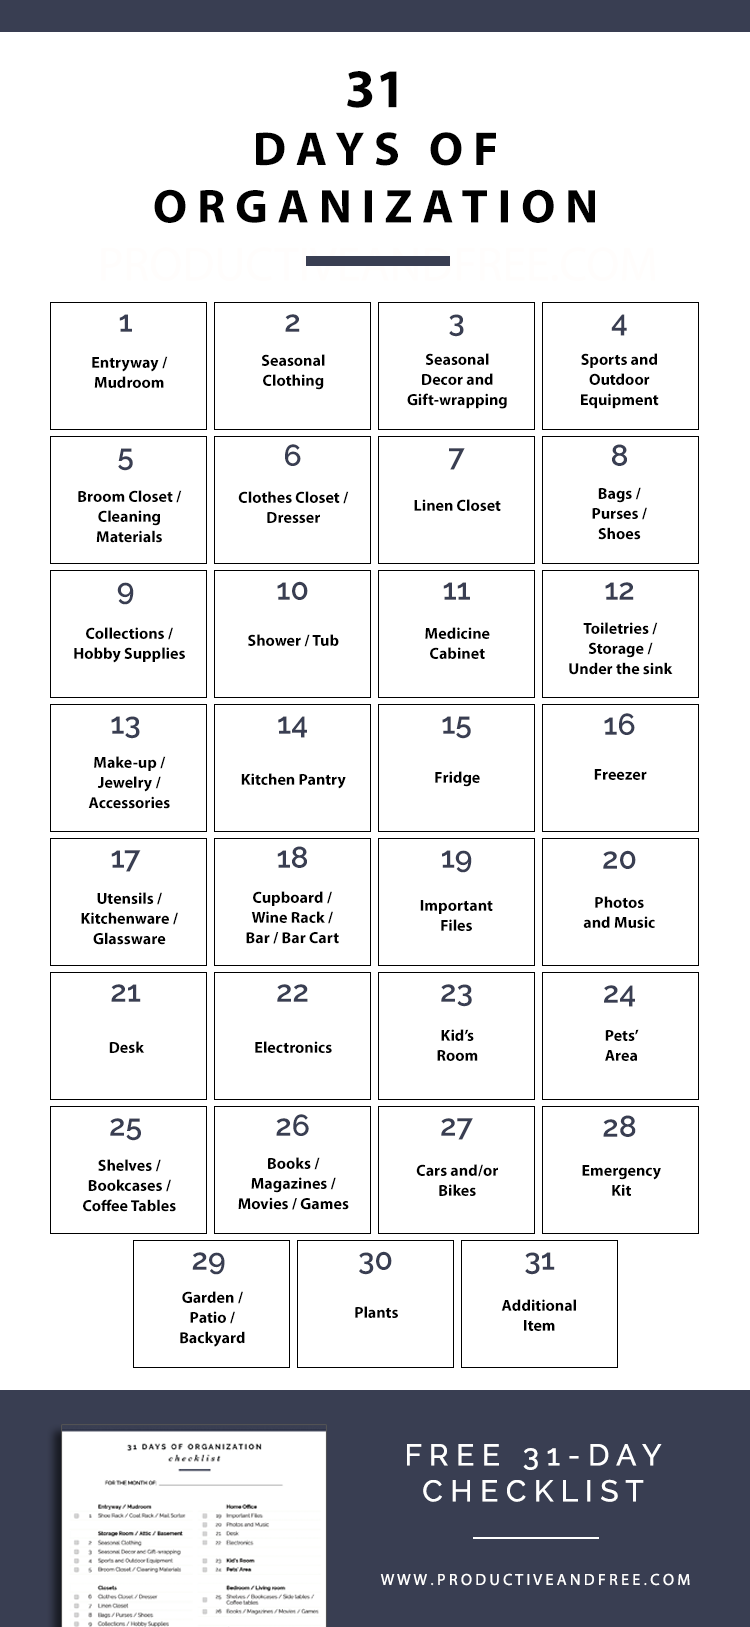 31 Days of Organization + Free Checklist | ProductiveandFree.com